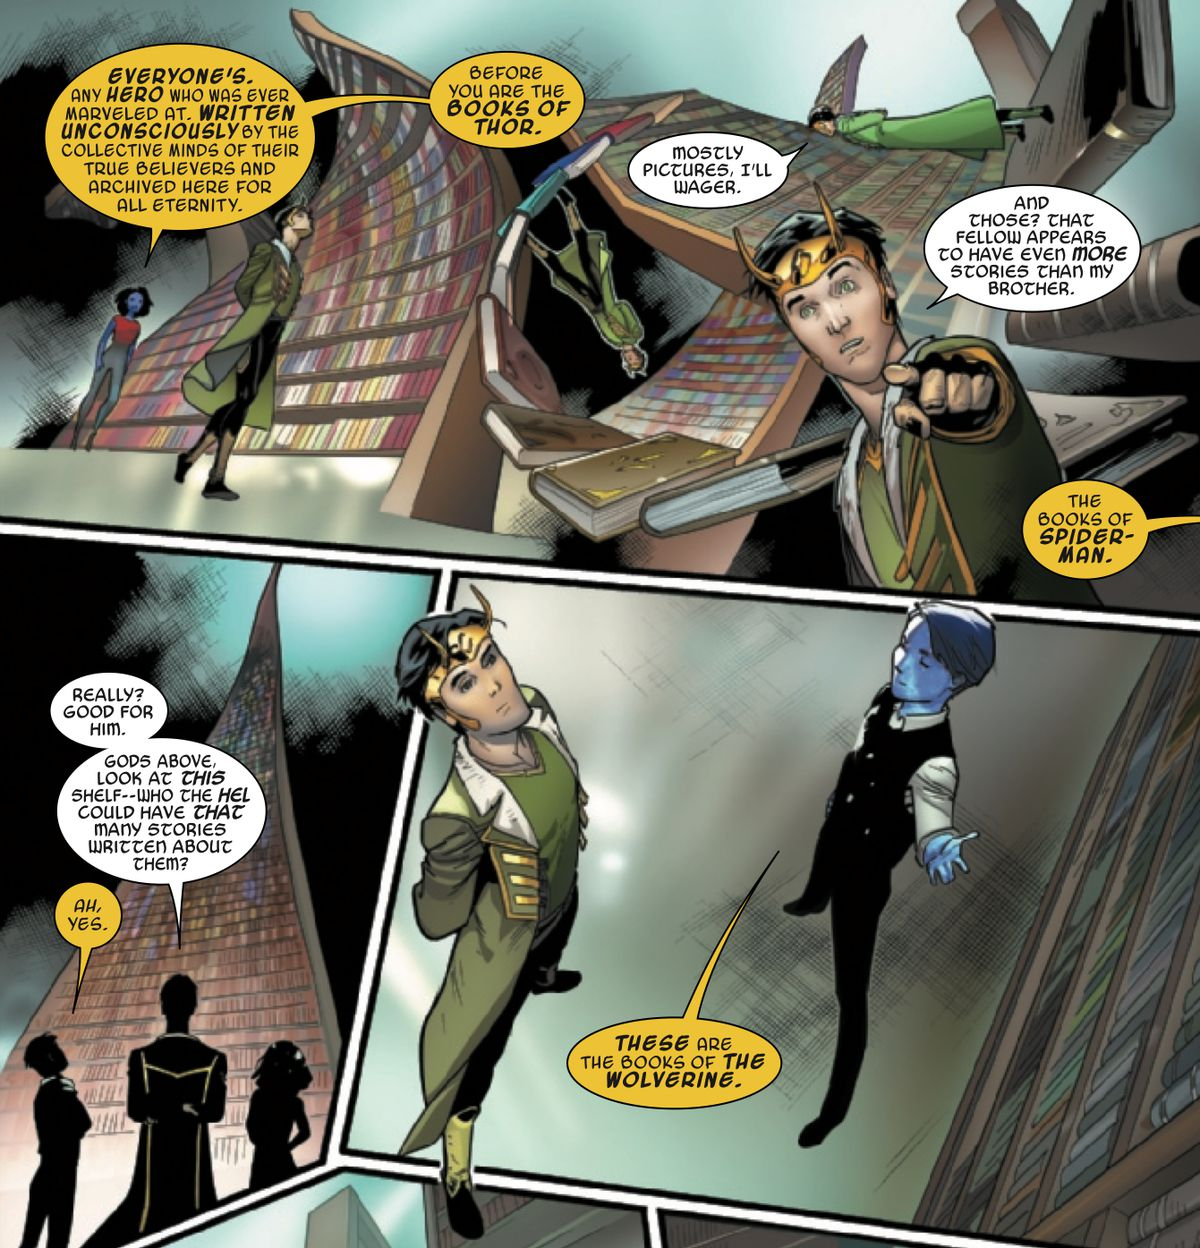 The Children of Eternity show Loki the a library of every tale in the Marvel Universe. Wolverine's shelf is very big, in Loki #3, Marvel Comics (2019).